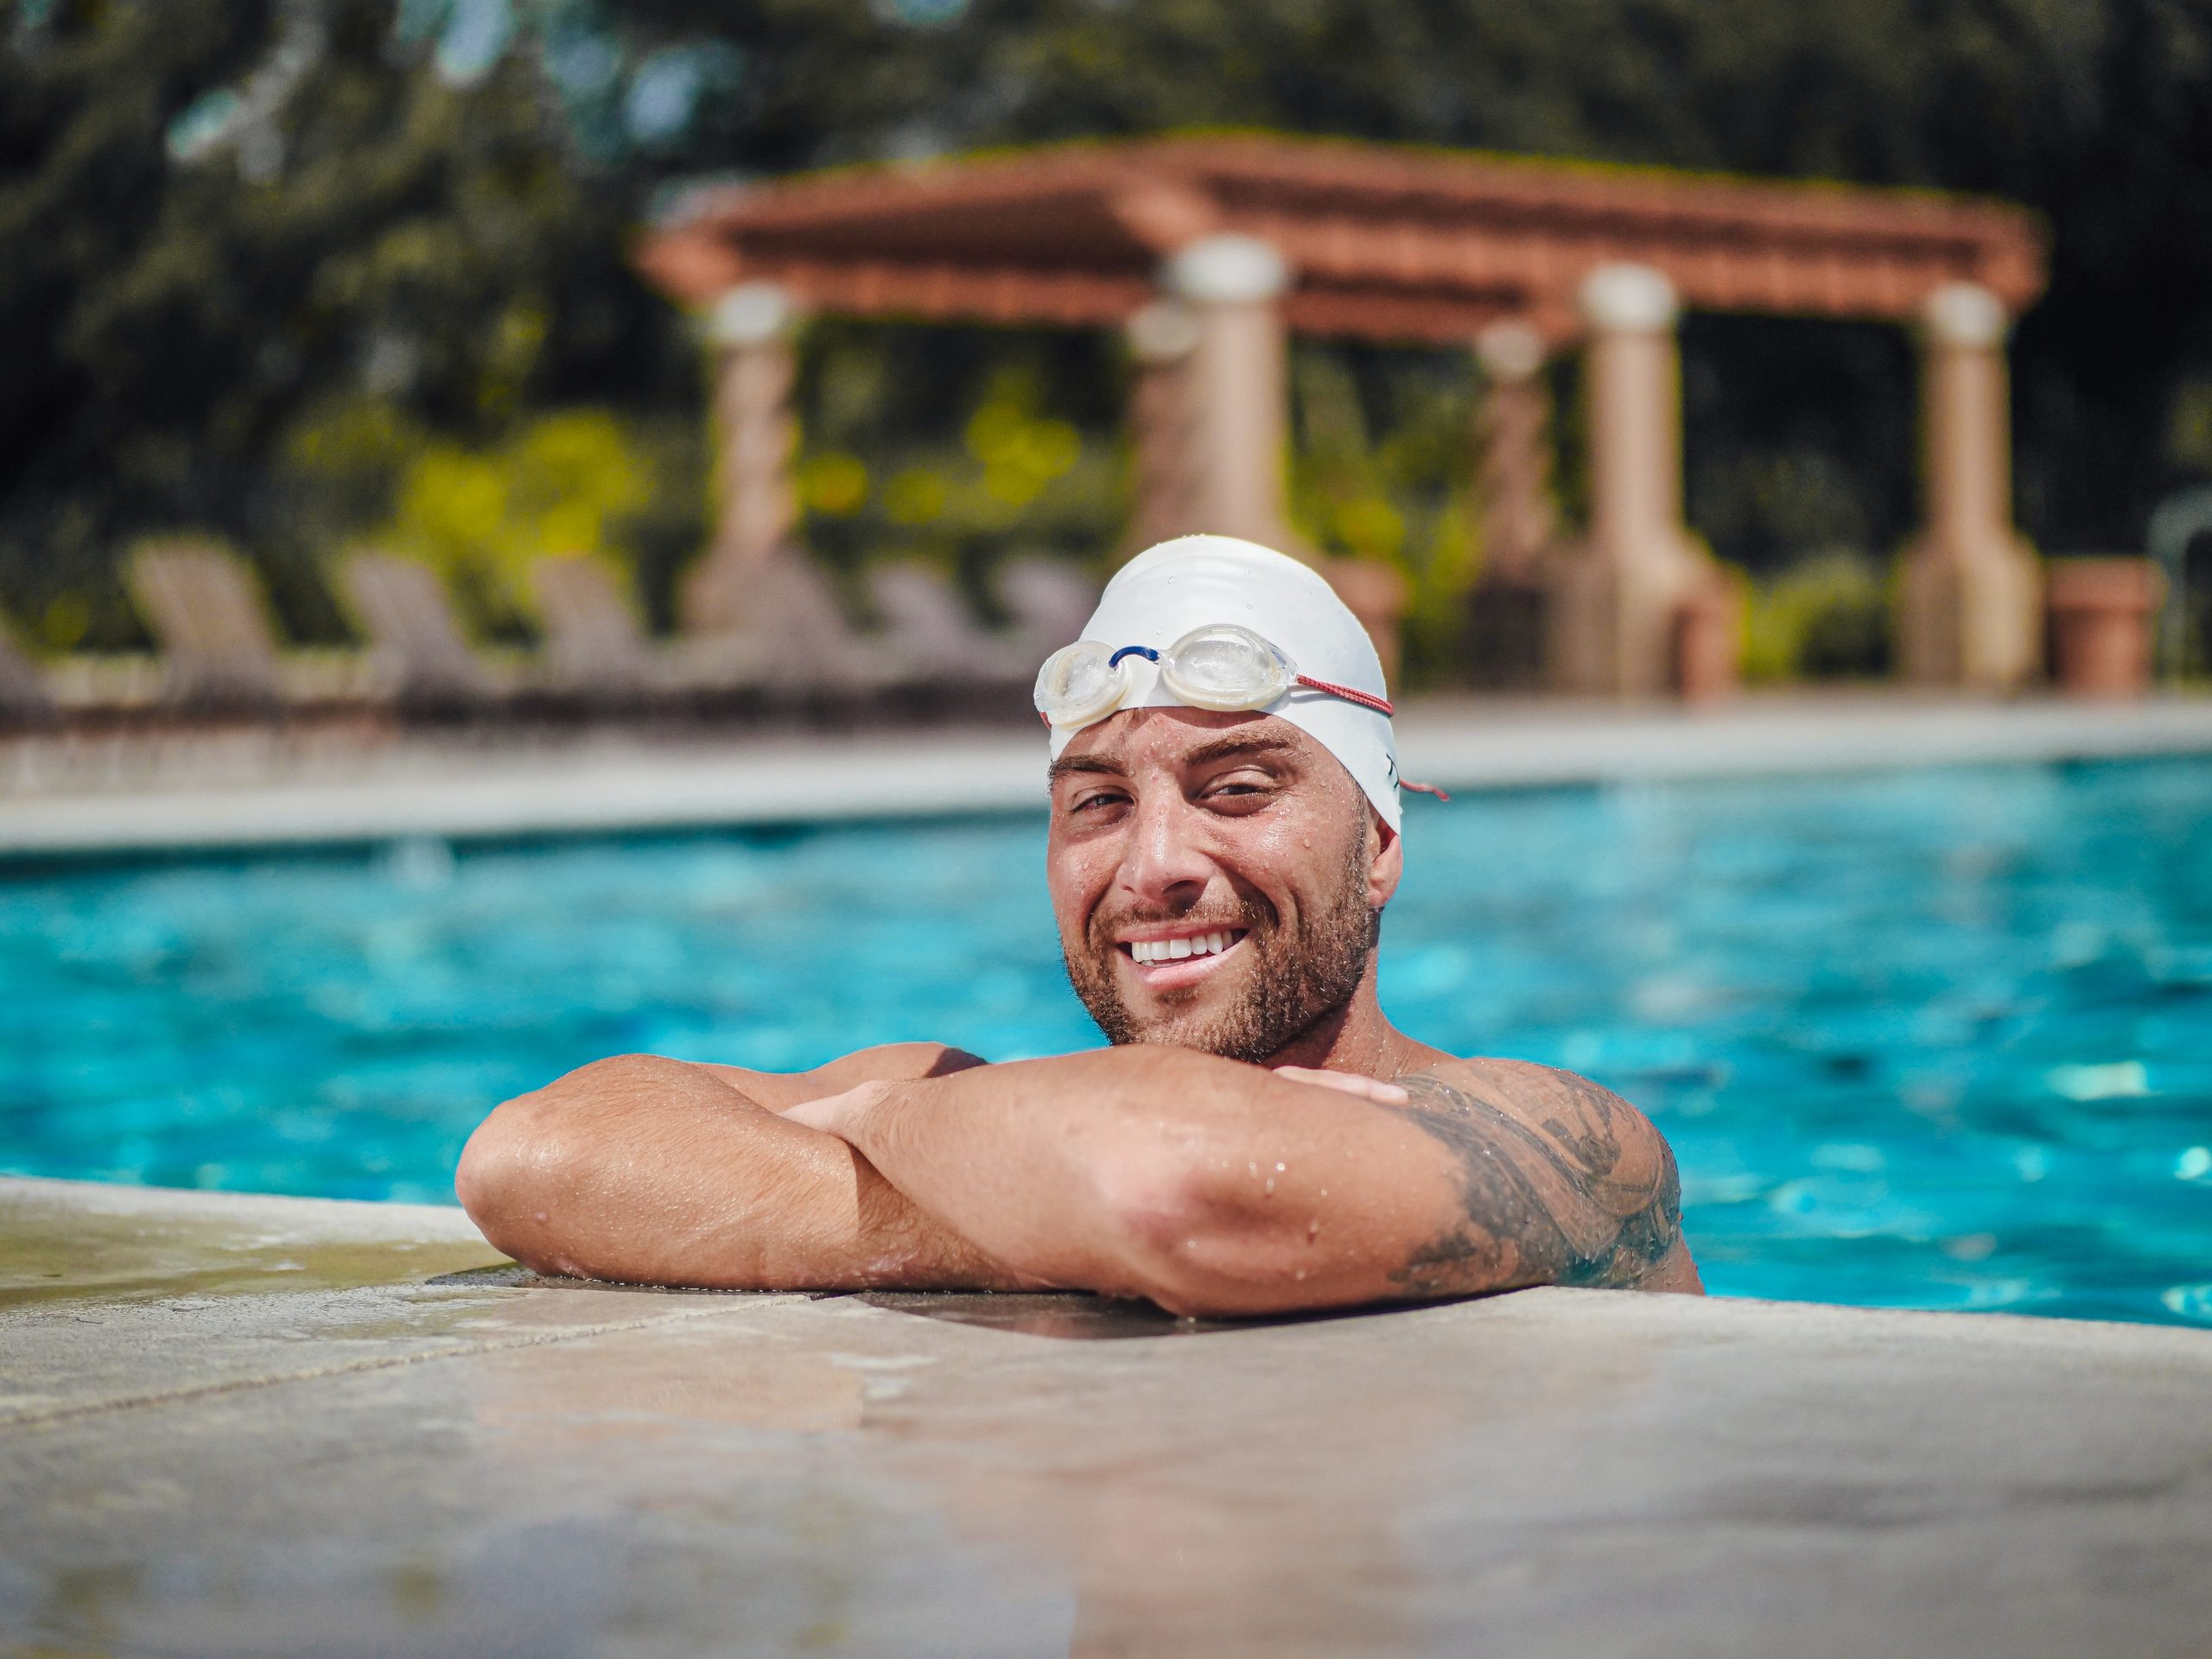 an wearing a white cap and staying at the edge of a swimming pool